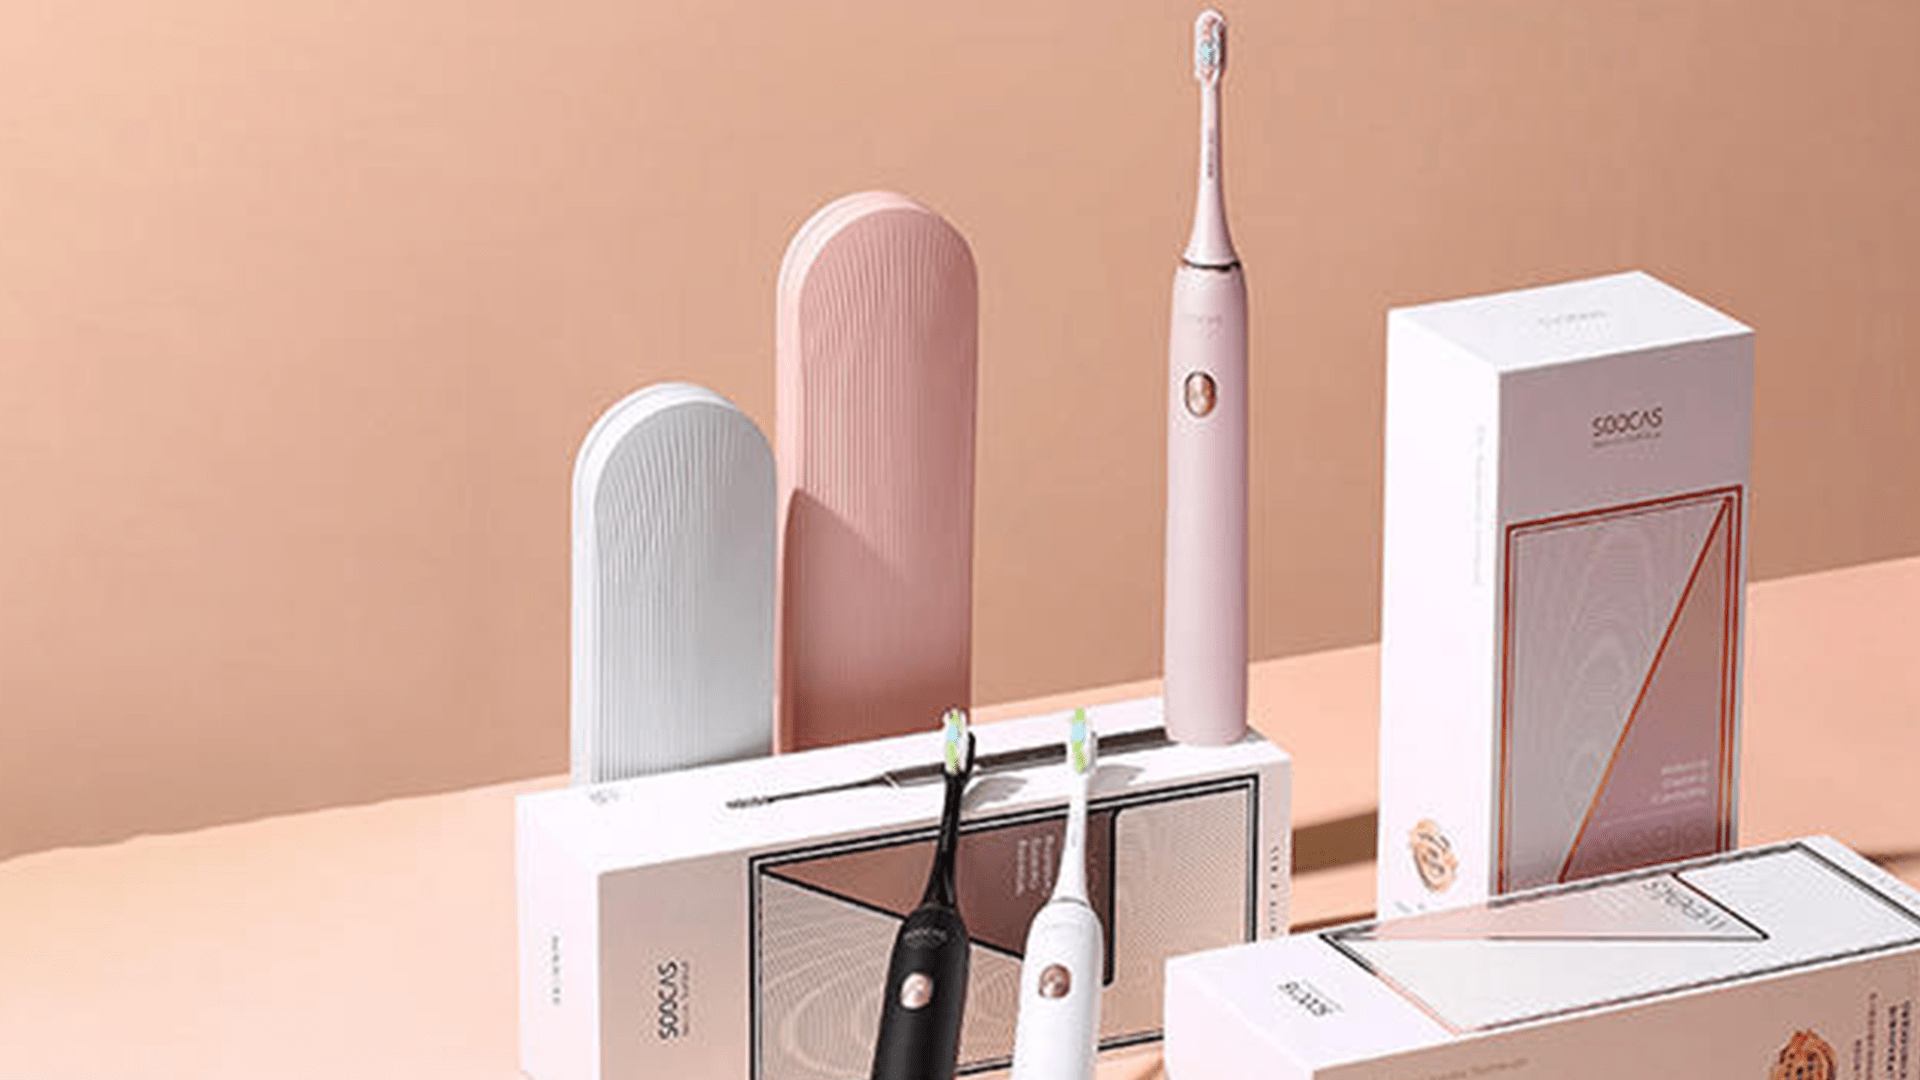 Sonic Electric Toothbrush X3U 12 - Sneapy